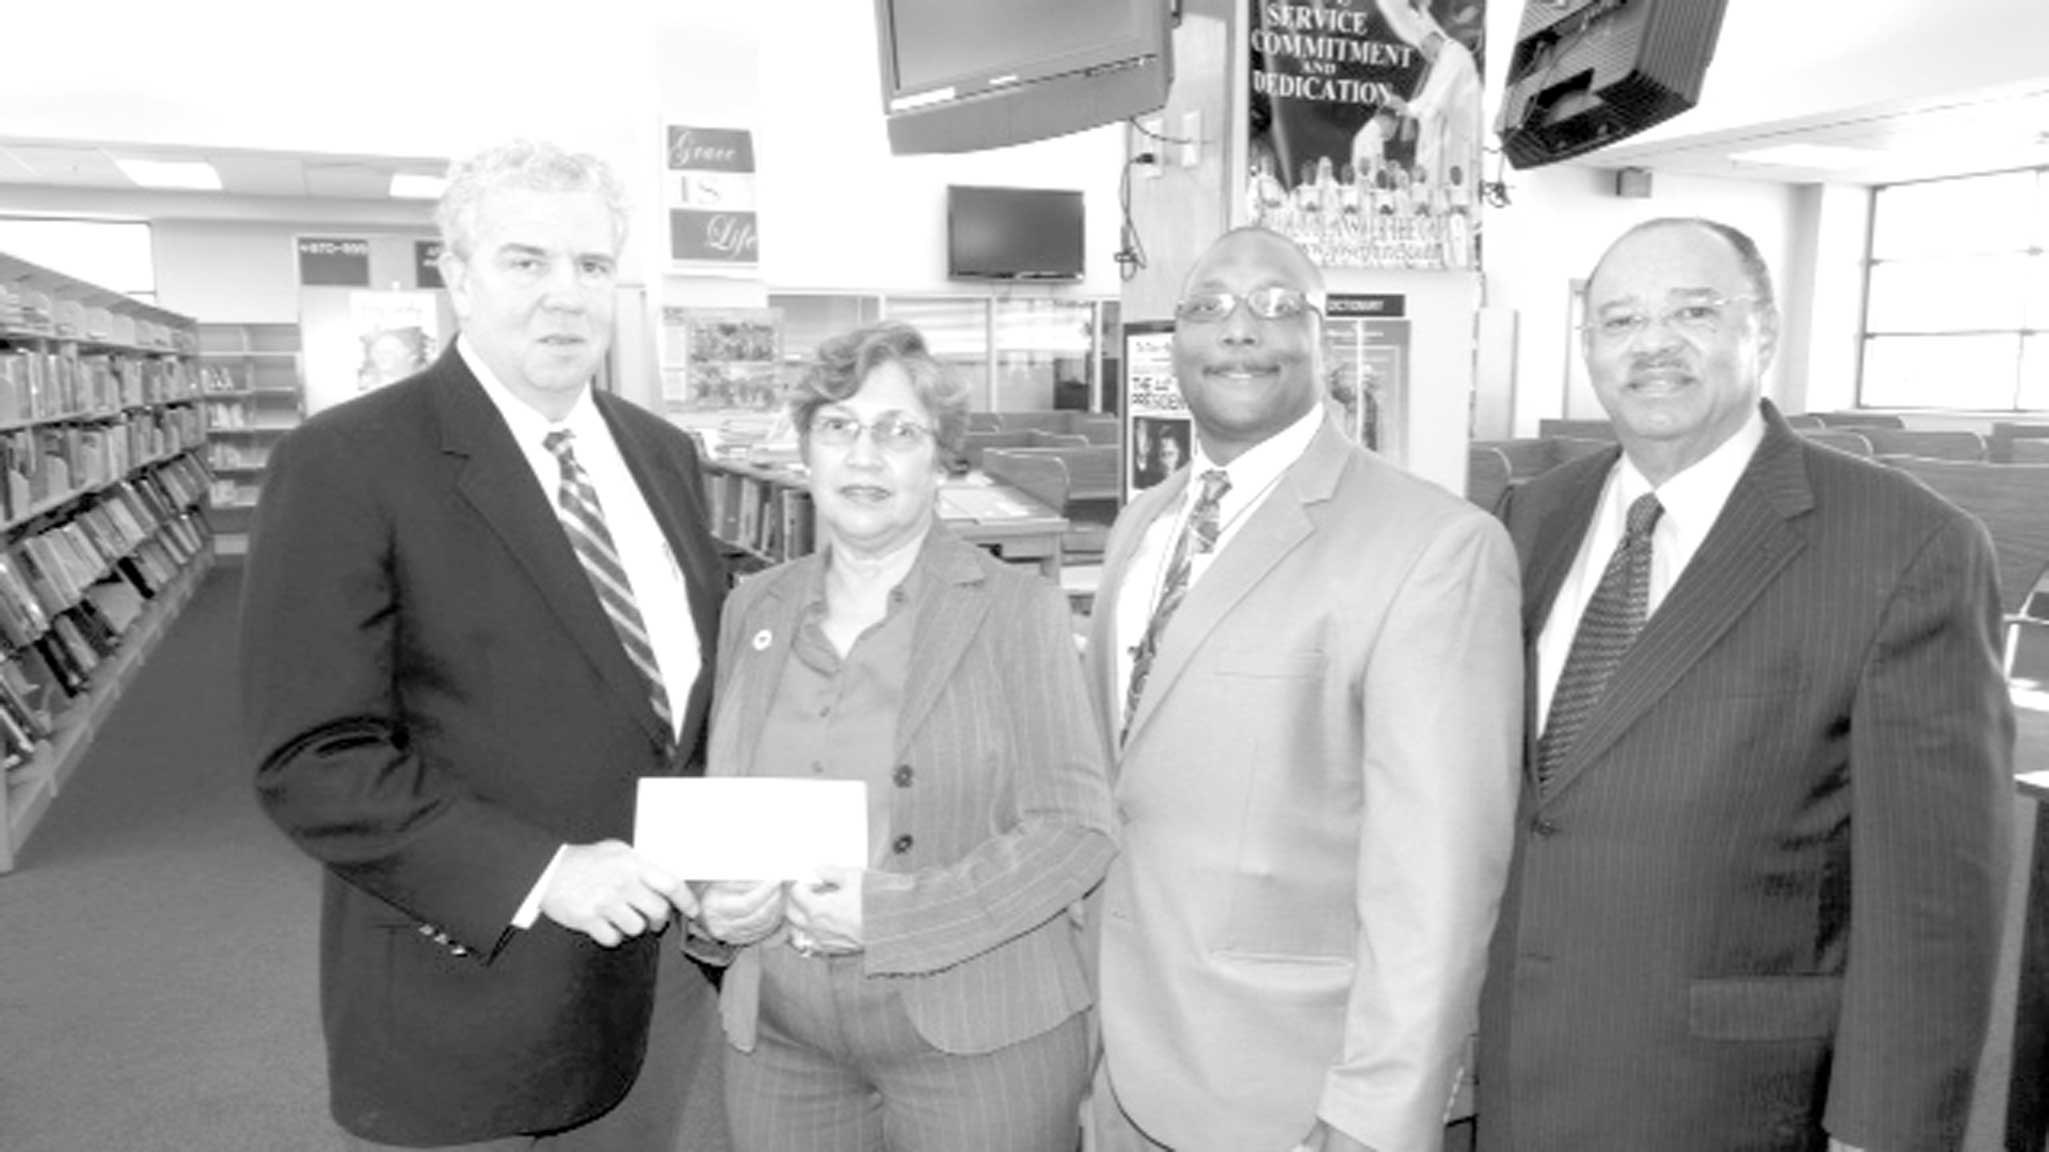 Making the corporate donation on behalf of AT&T to Ladies for Purple Scholars Foundation representative Ann Eugene is Leo Marsh, left. On hand for the presentation are St. Aug principal Sean Goodwin, second from right, and Lambert Boissiere, Constable of First City Court and St. August alumnus.